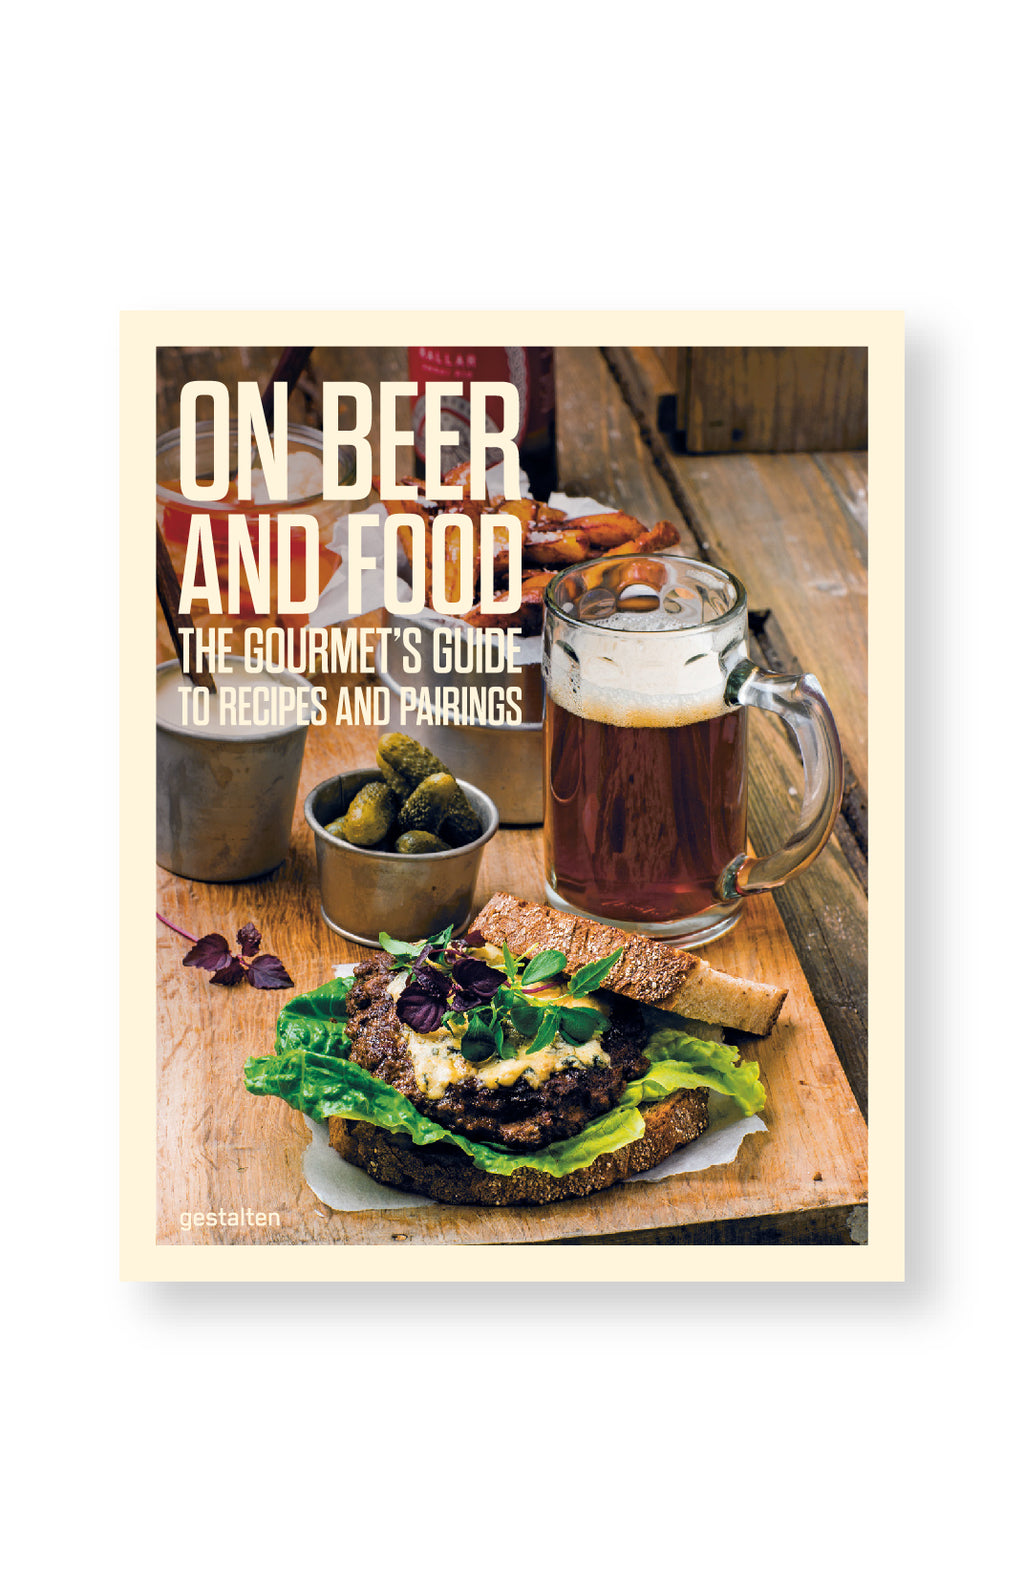 On Beer and Food - The Gourmet's Guide to Recipes and Pairings